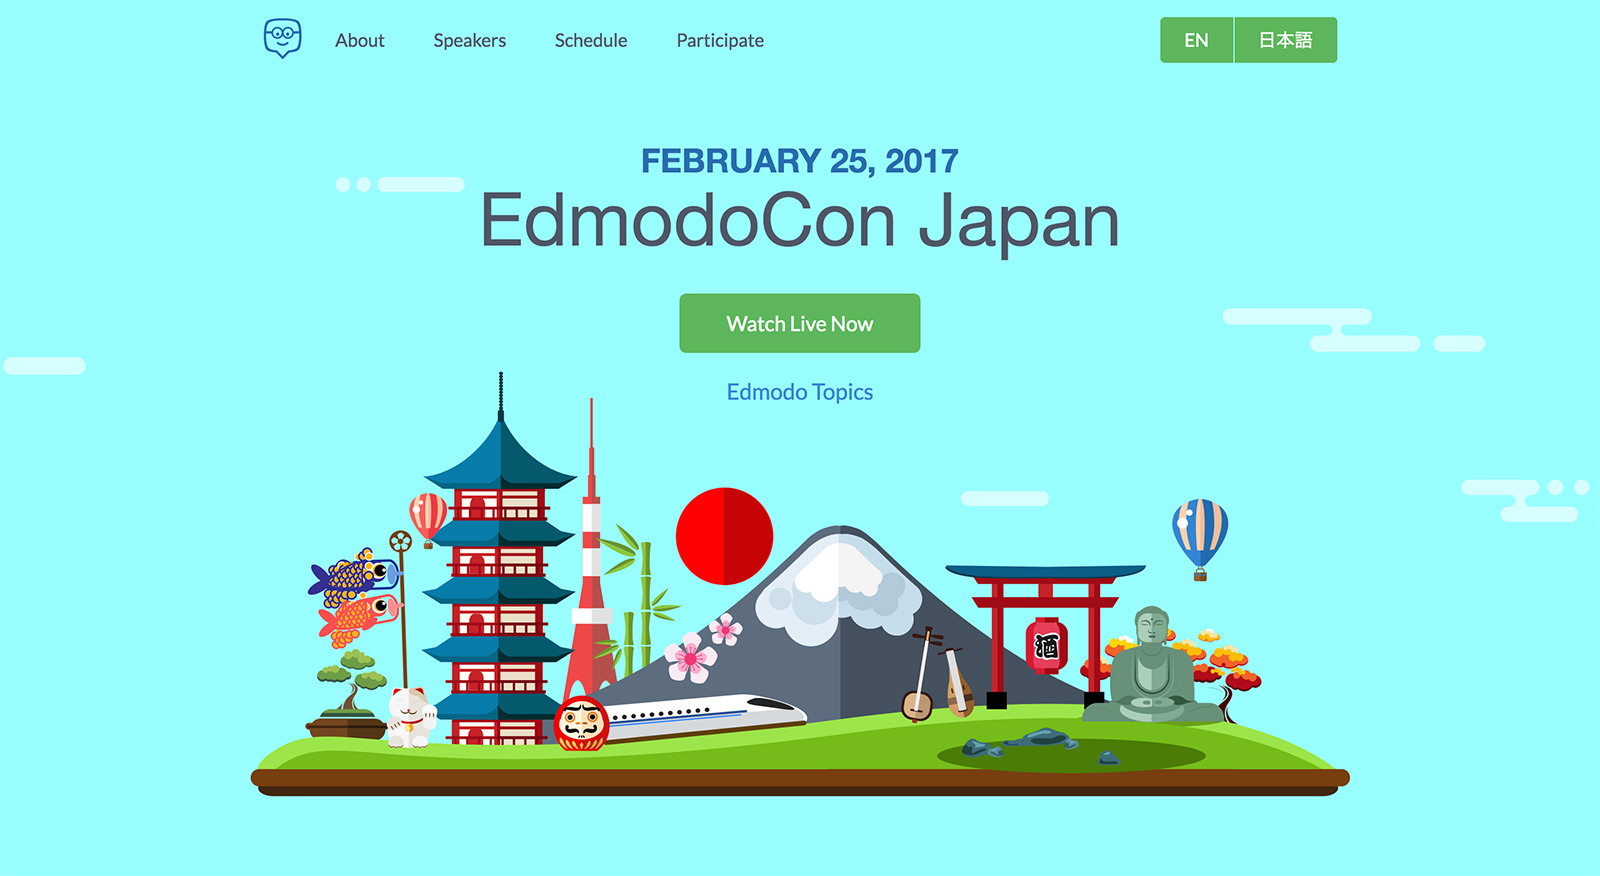 EdmodoCon Japan